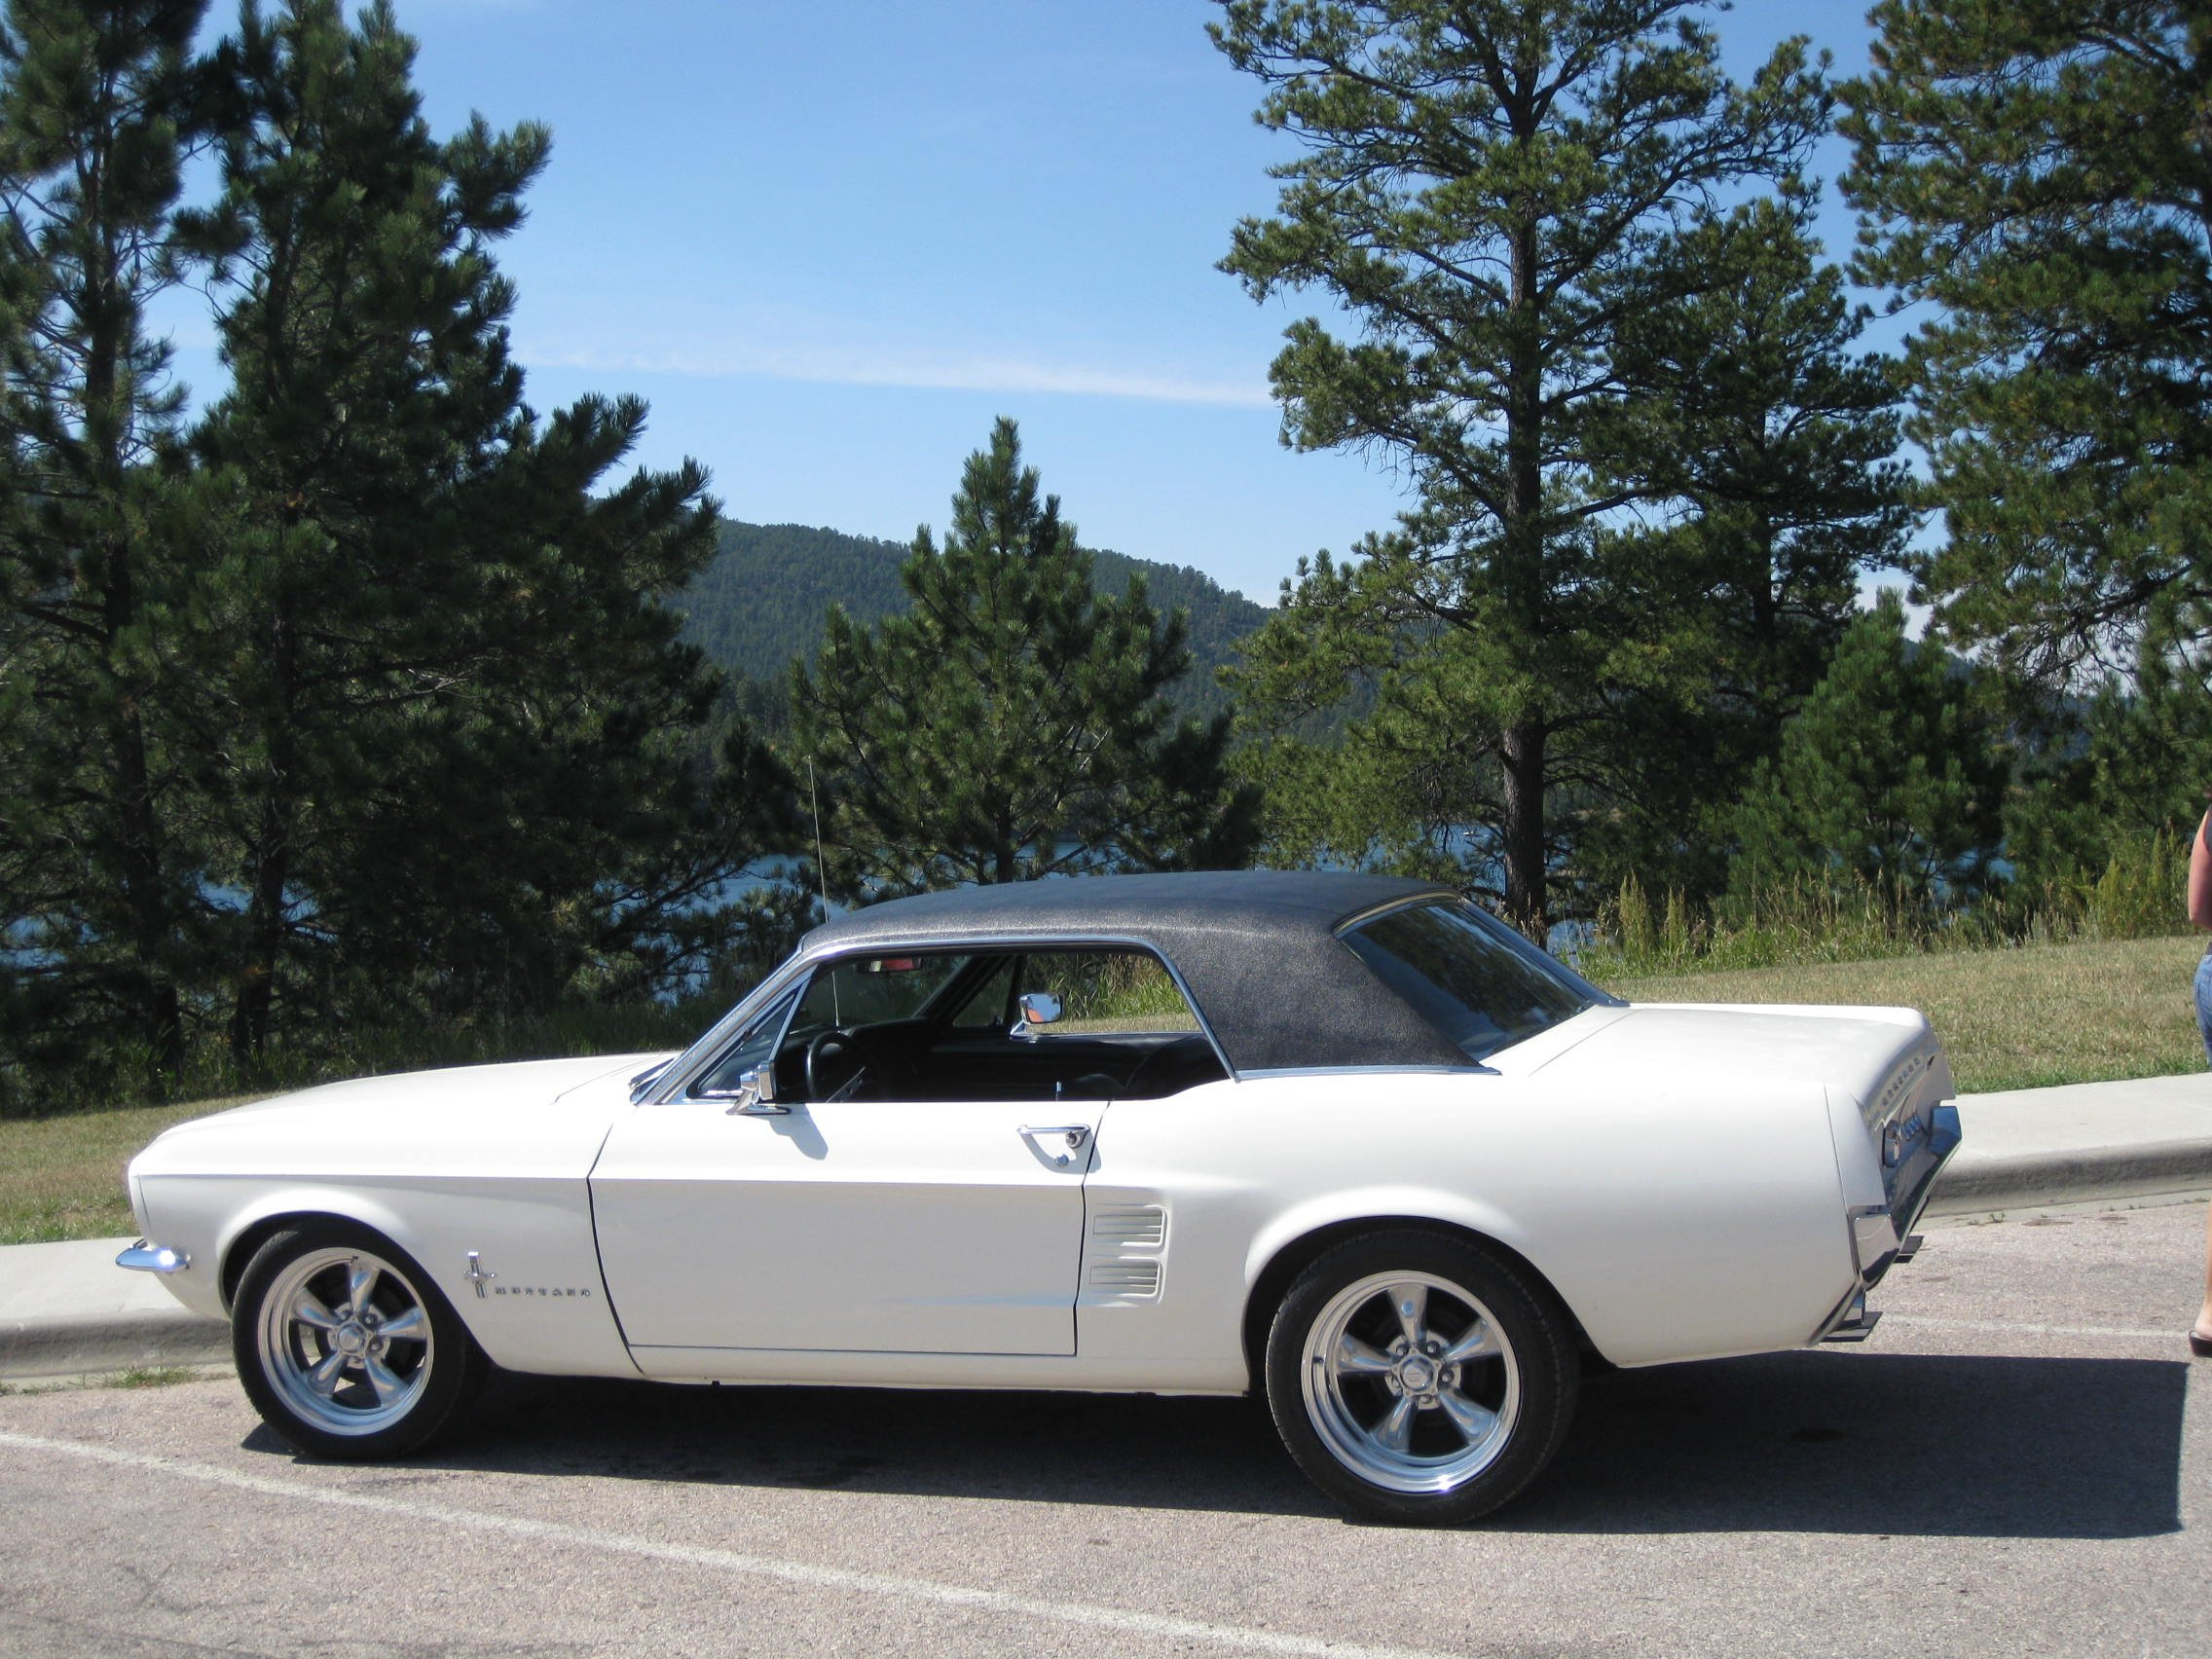 1967 - 1968 Mustang Tire and Wheels Picture Thread-mustang-rally-028.jpg